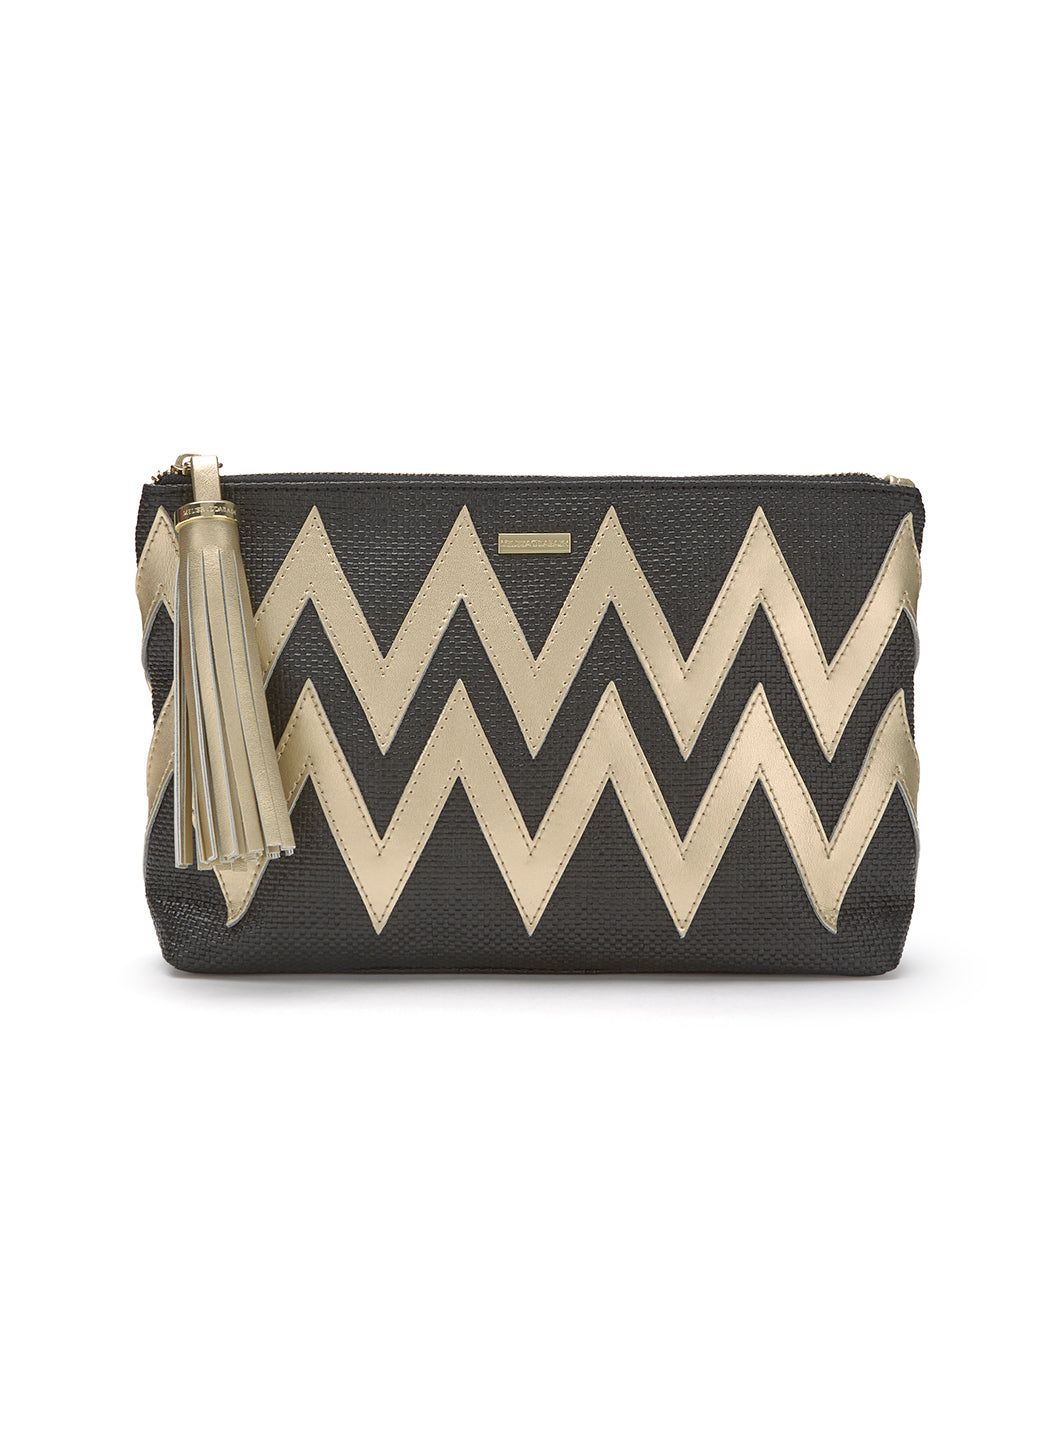 Crete Zigzag Clutch Black Gold - Melissa Odabash Accessories